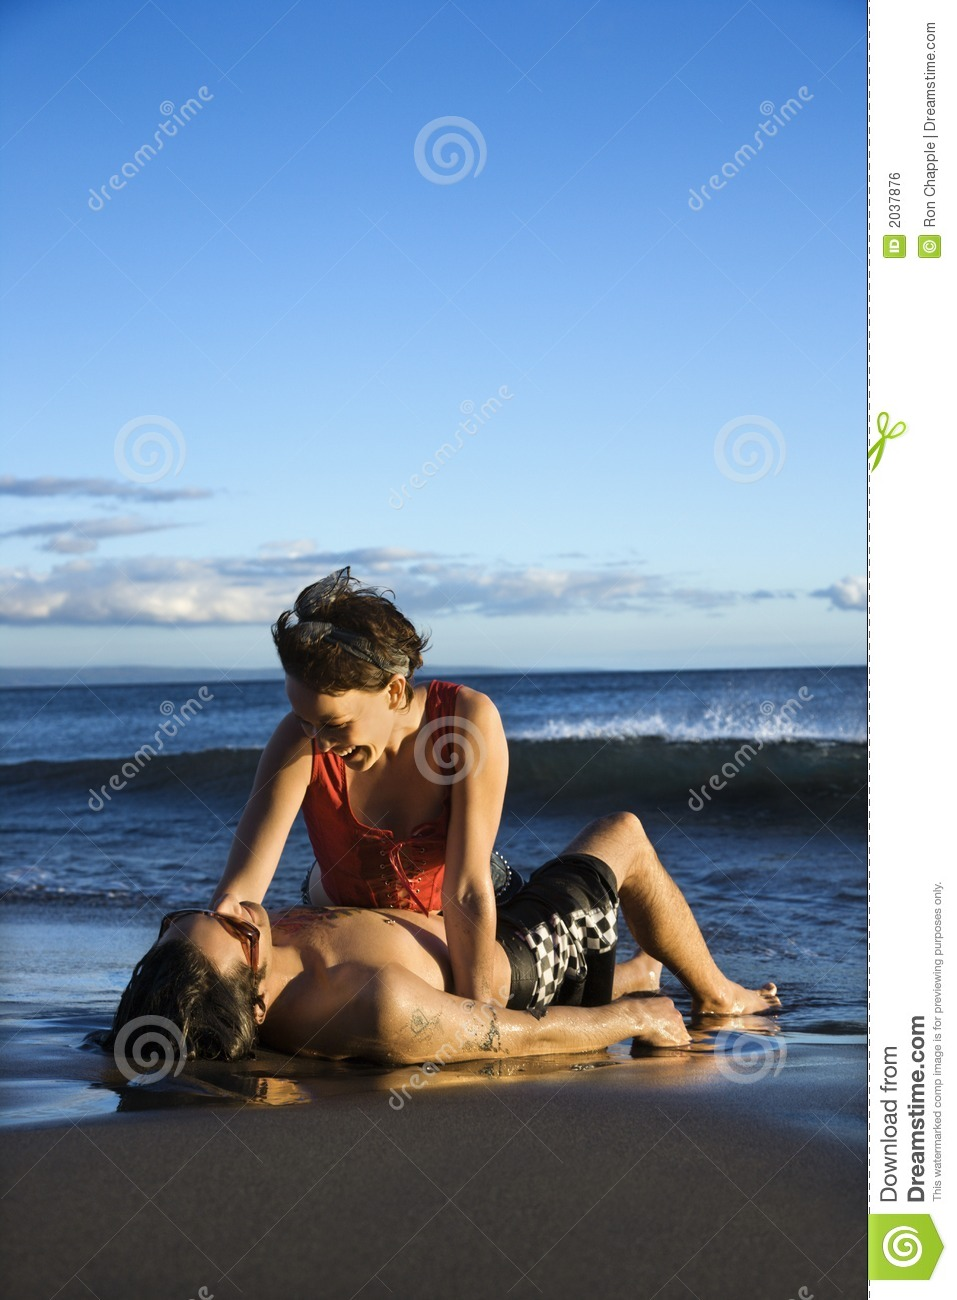 Young adult couple on beach.